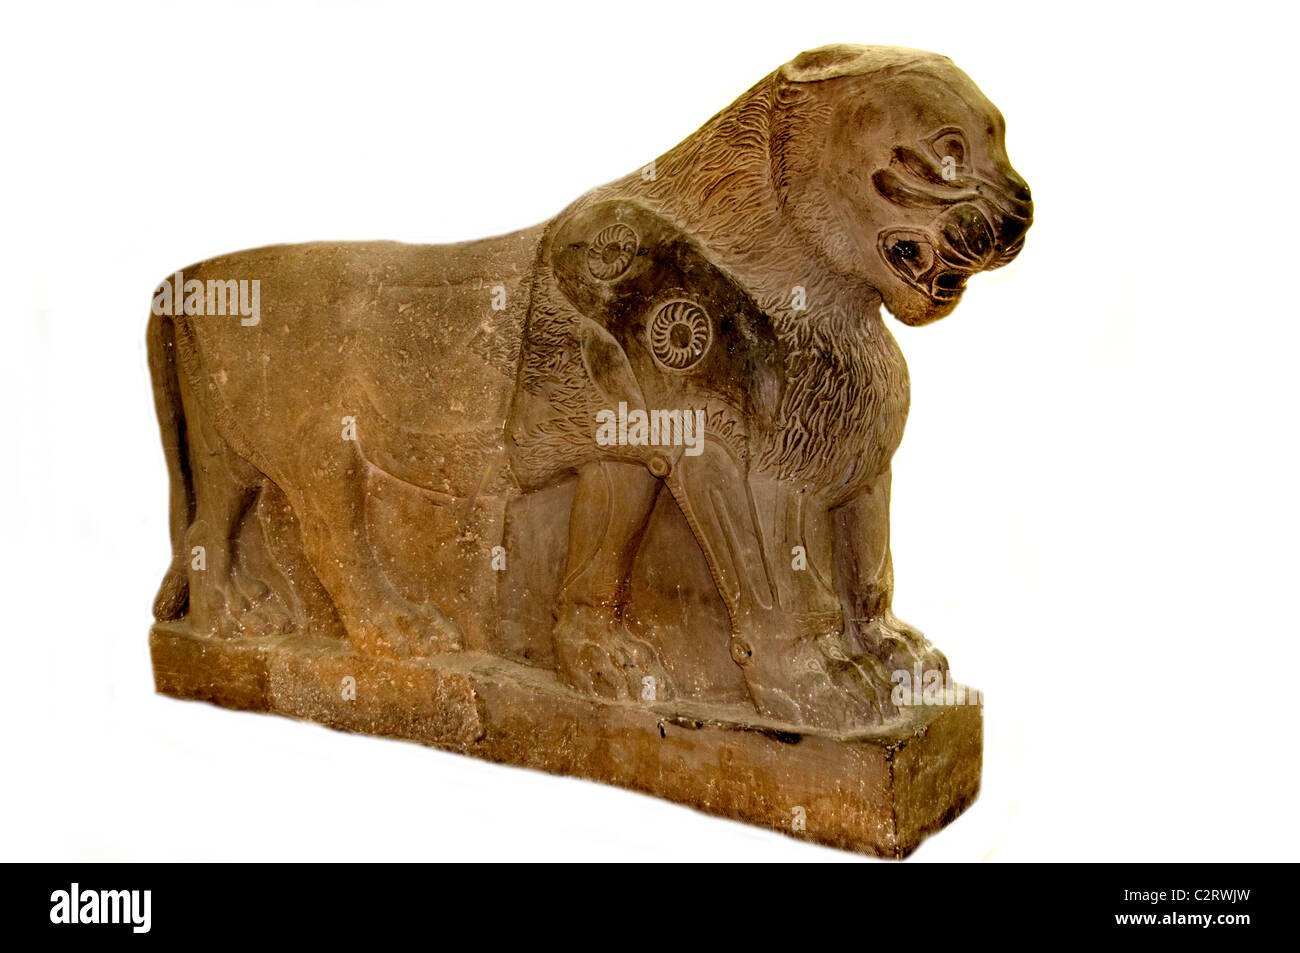 National Museum Aleppo copy Armenean  Lion of the Aramaic palace Tell Halaf 9th cent BC Syria Armenia - Stock Image